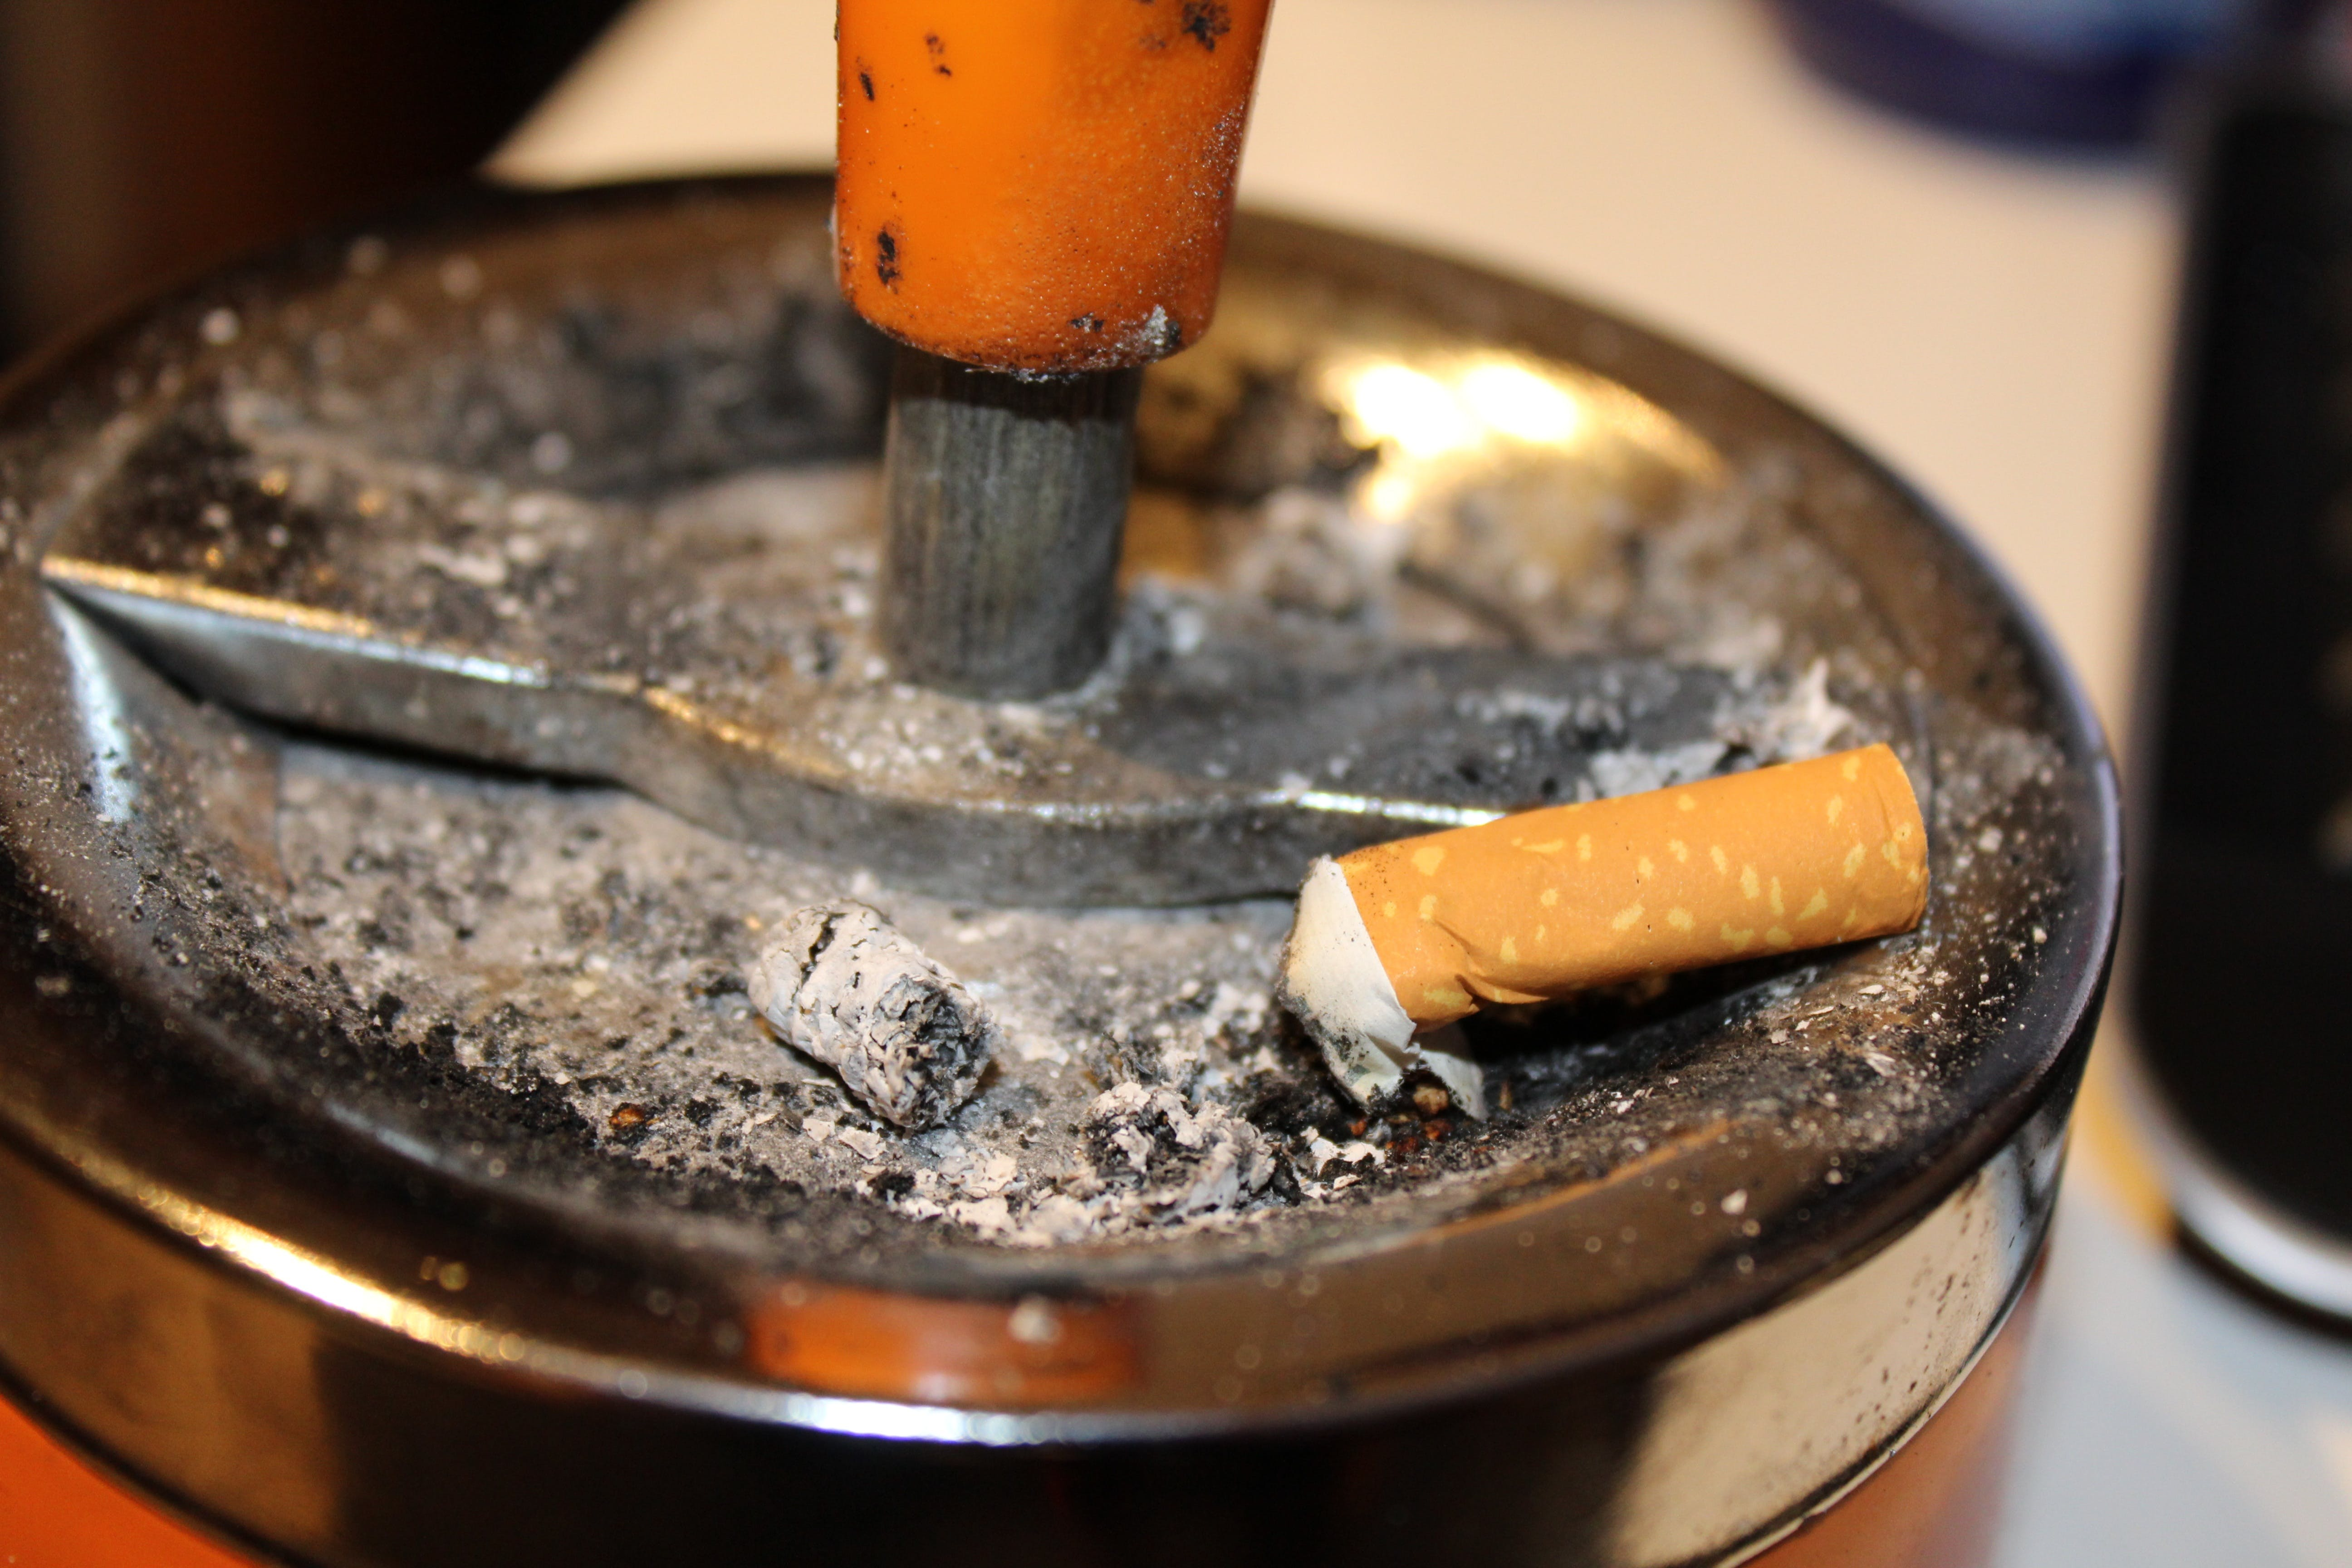 Gray Ashtray Filled With Cigarette Butt